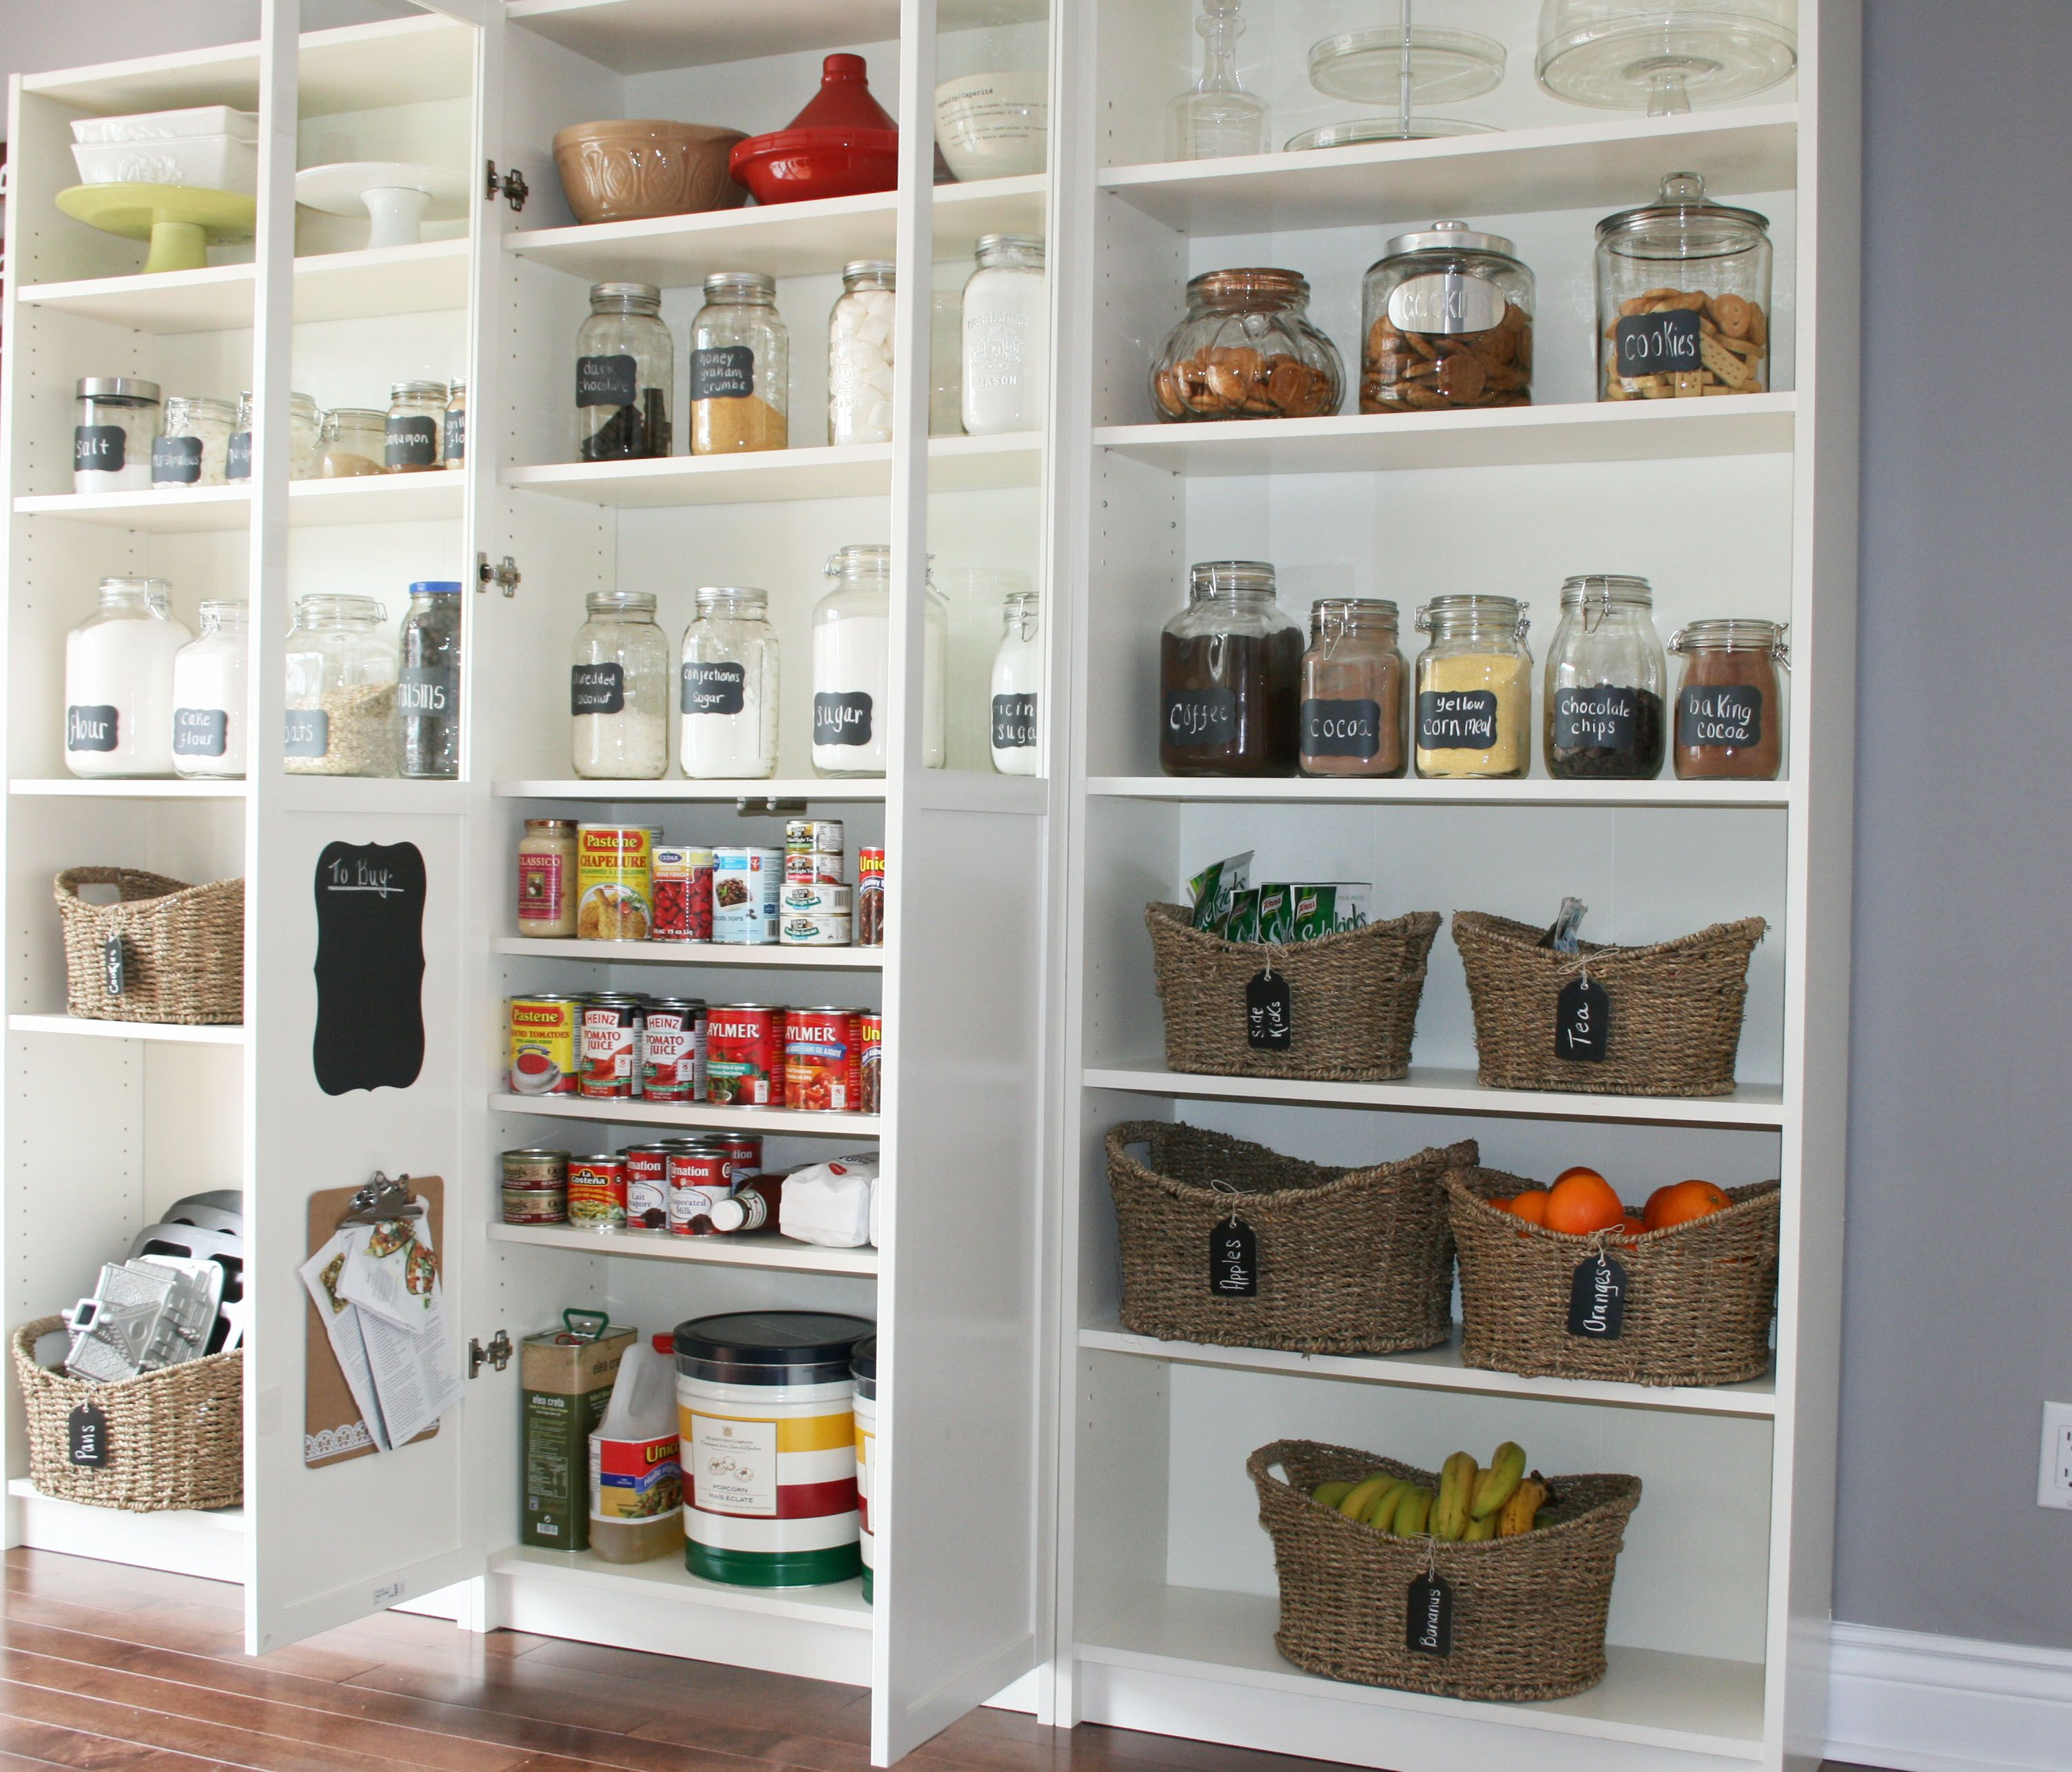 DIY and organizing a pantry part II